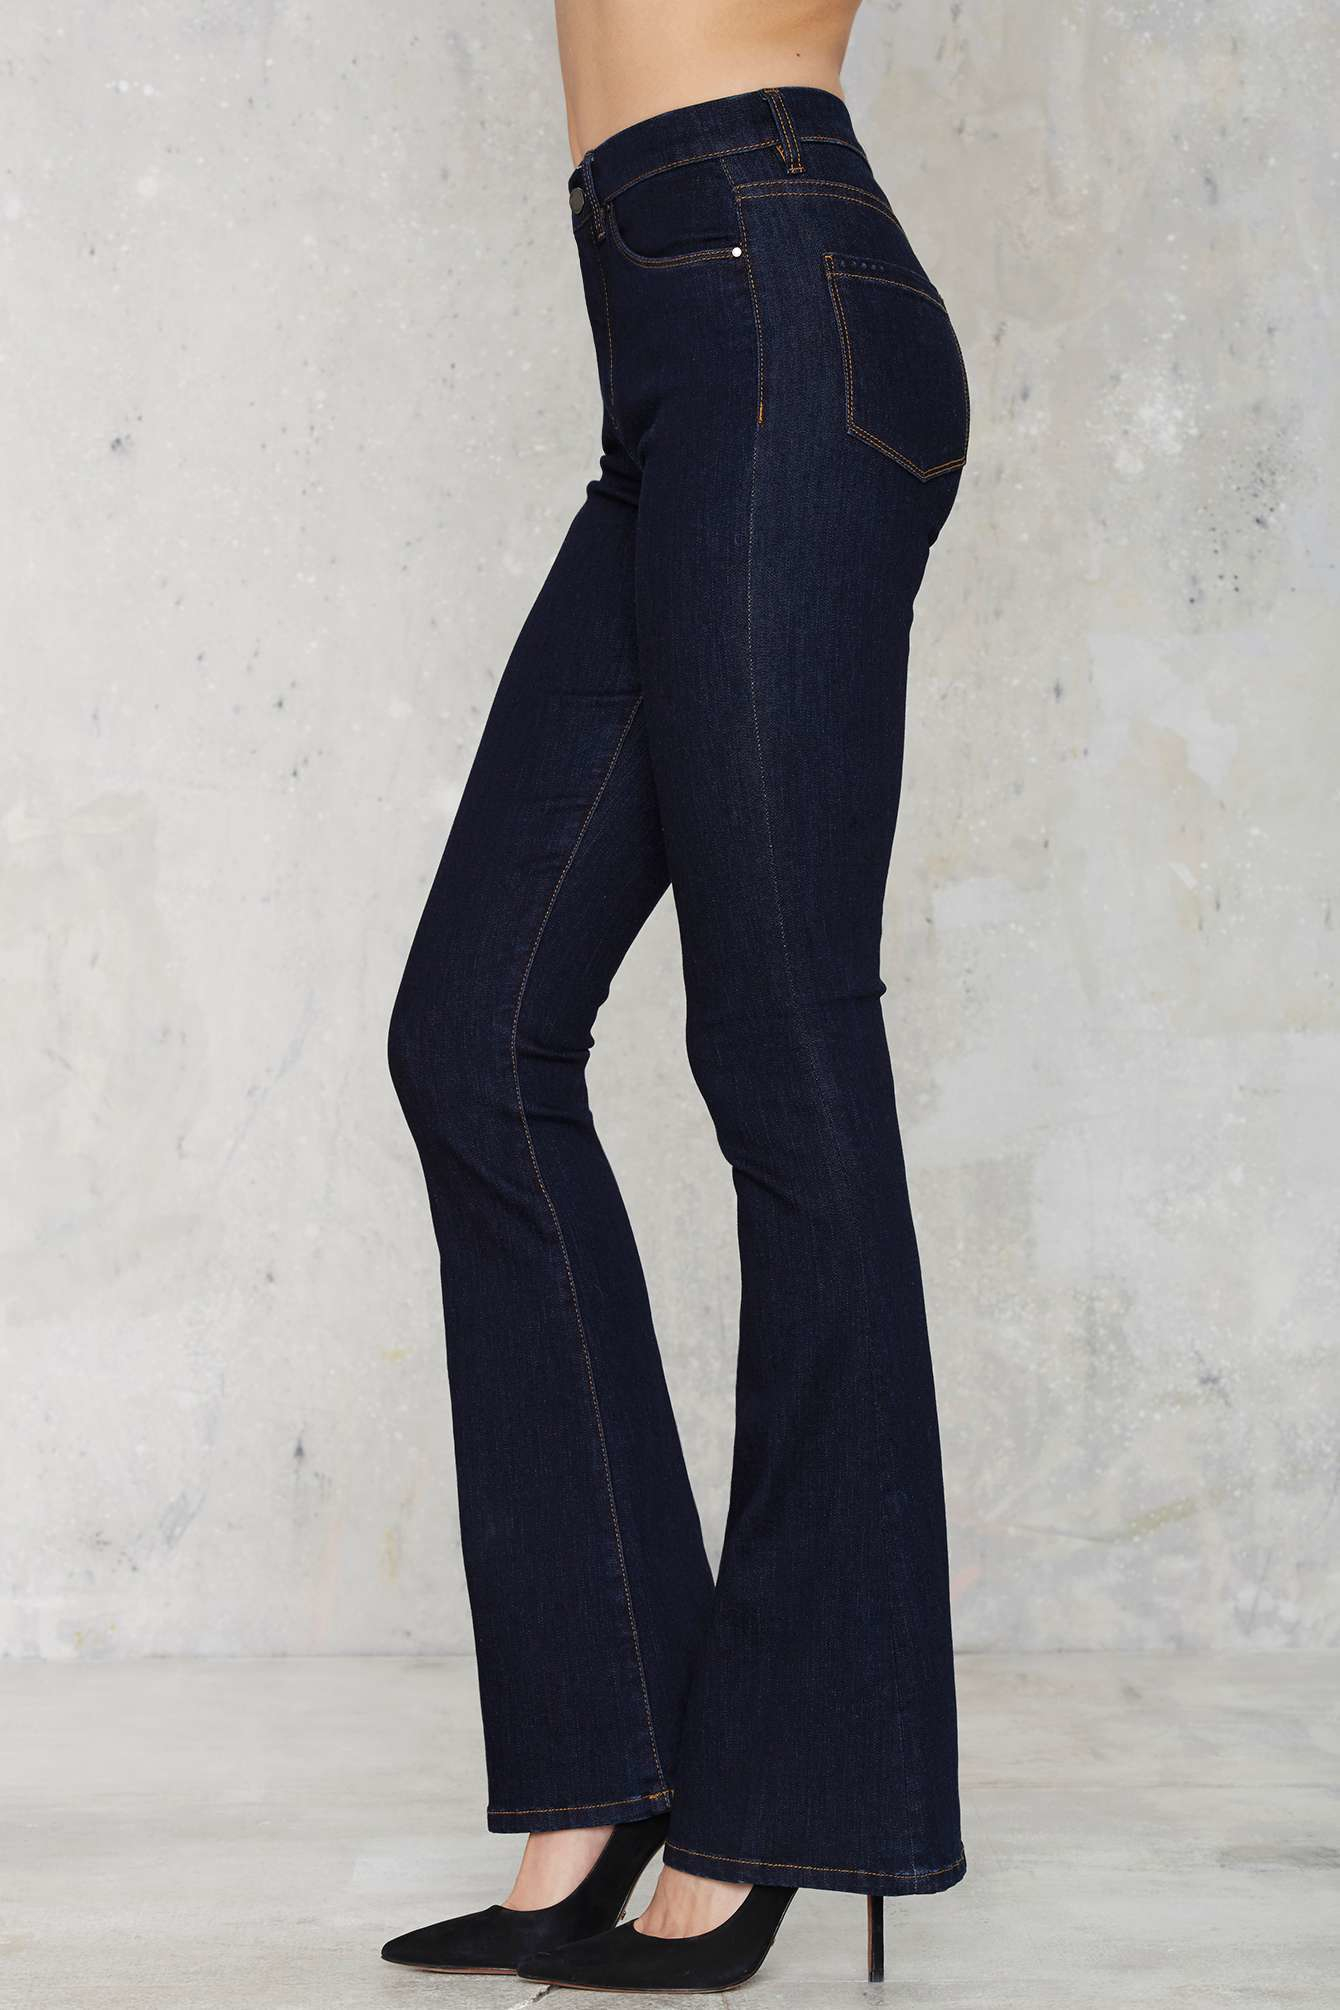 Blank Lies And Alibis Flare Jeans in Blue | Lyst